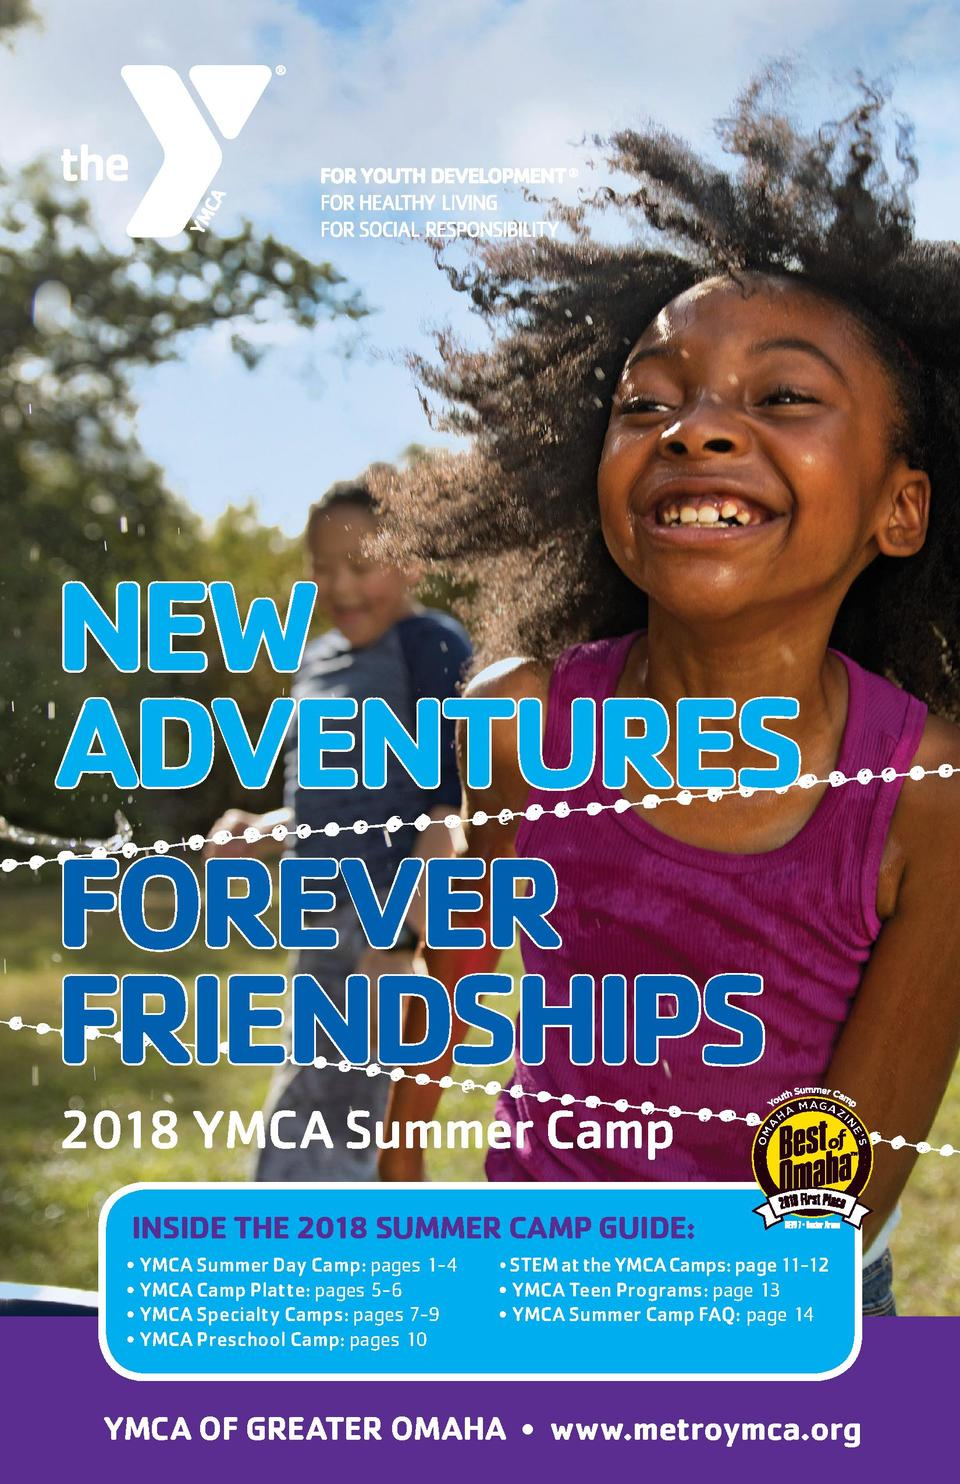 NEW ADVENTURES FOREVER FRIENDSHIPS 2018 YMCA Summer Camp INSIDE THE 2018 SUMMER CAMP GUIDE      YMCA Summer Day Camp  page...